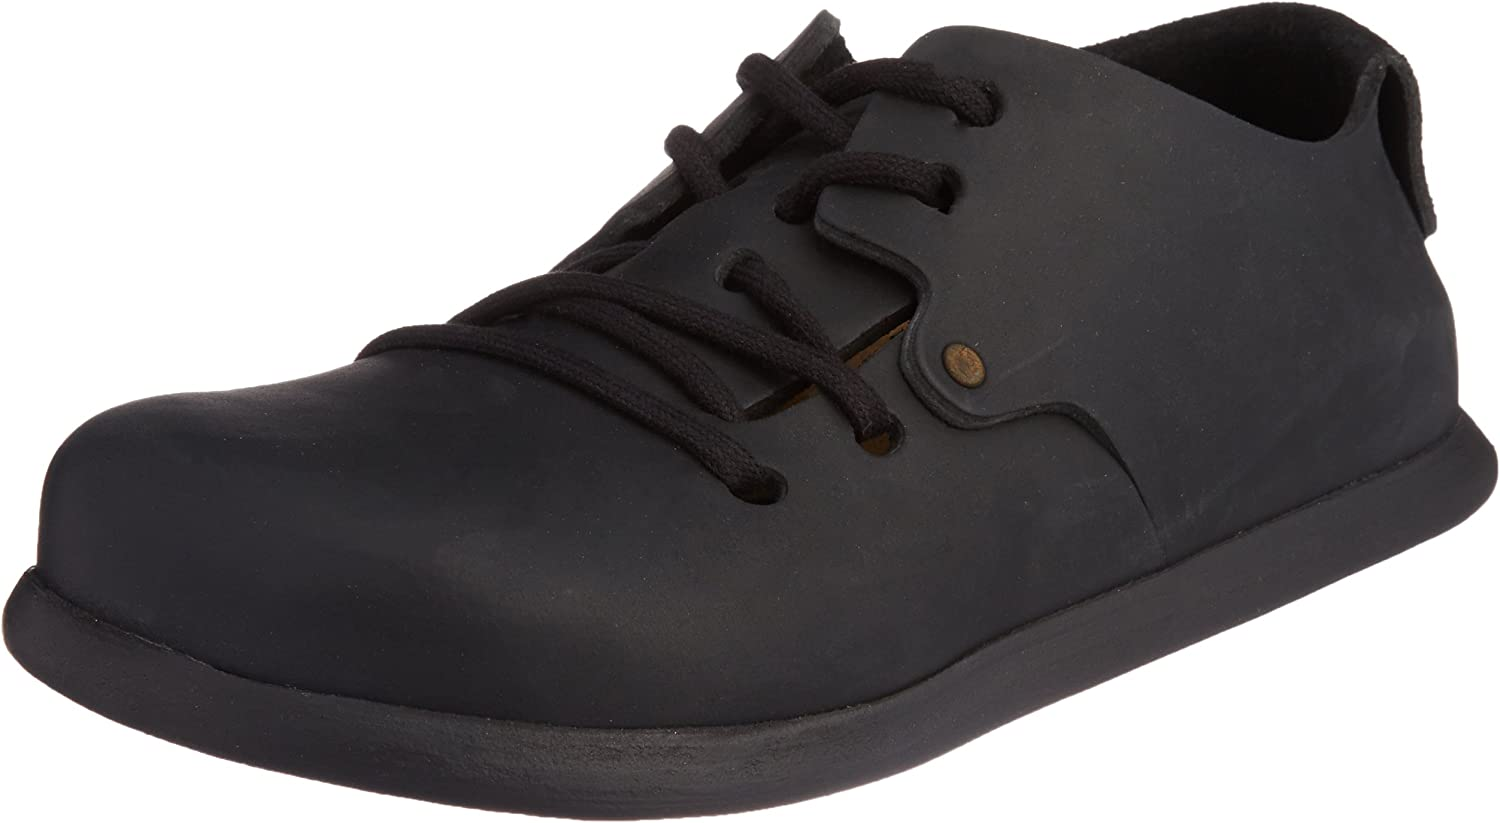 Provisional Monarca Amarillento  Amazon.com: Birkenstock Shoes ''Montana'' from Leather in Black 42.0 EU N:  Shoes